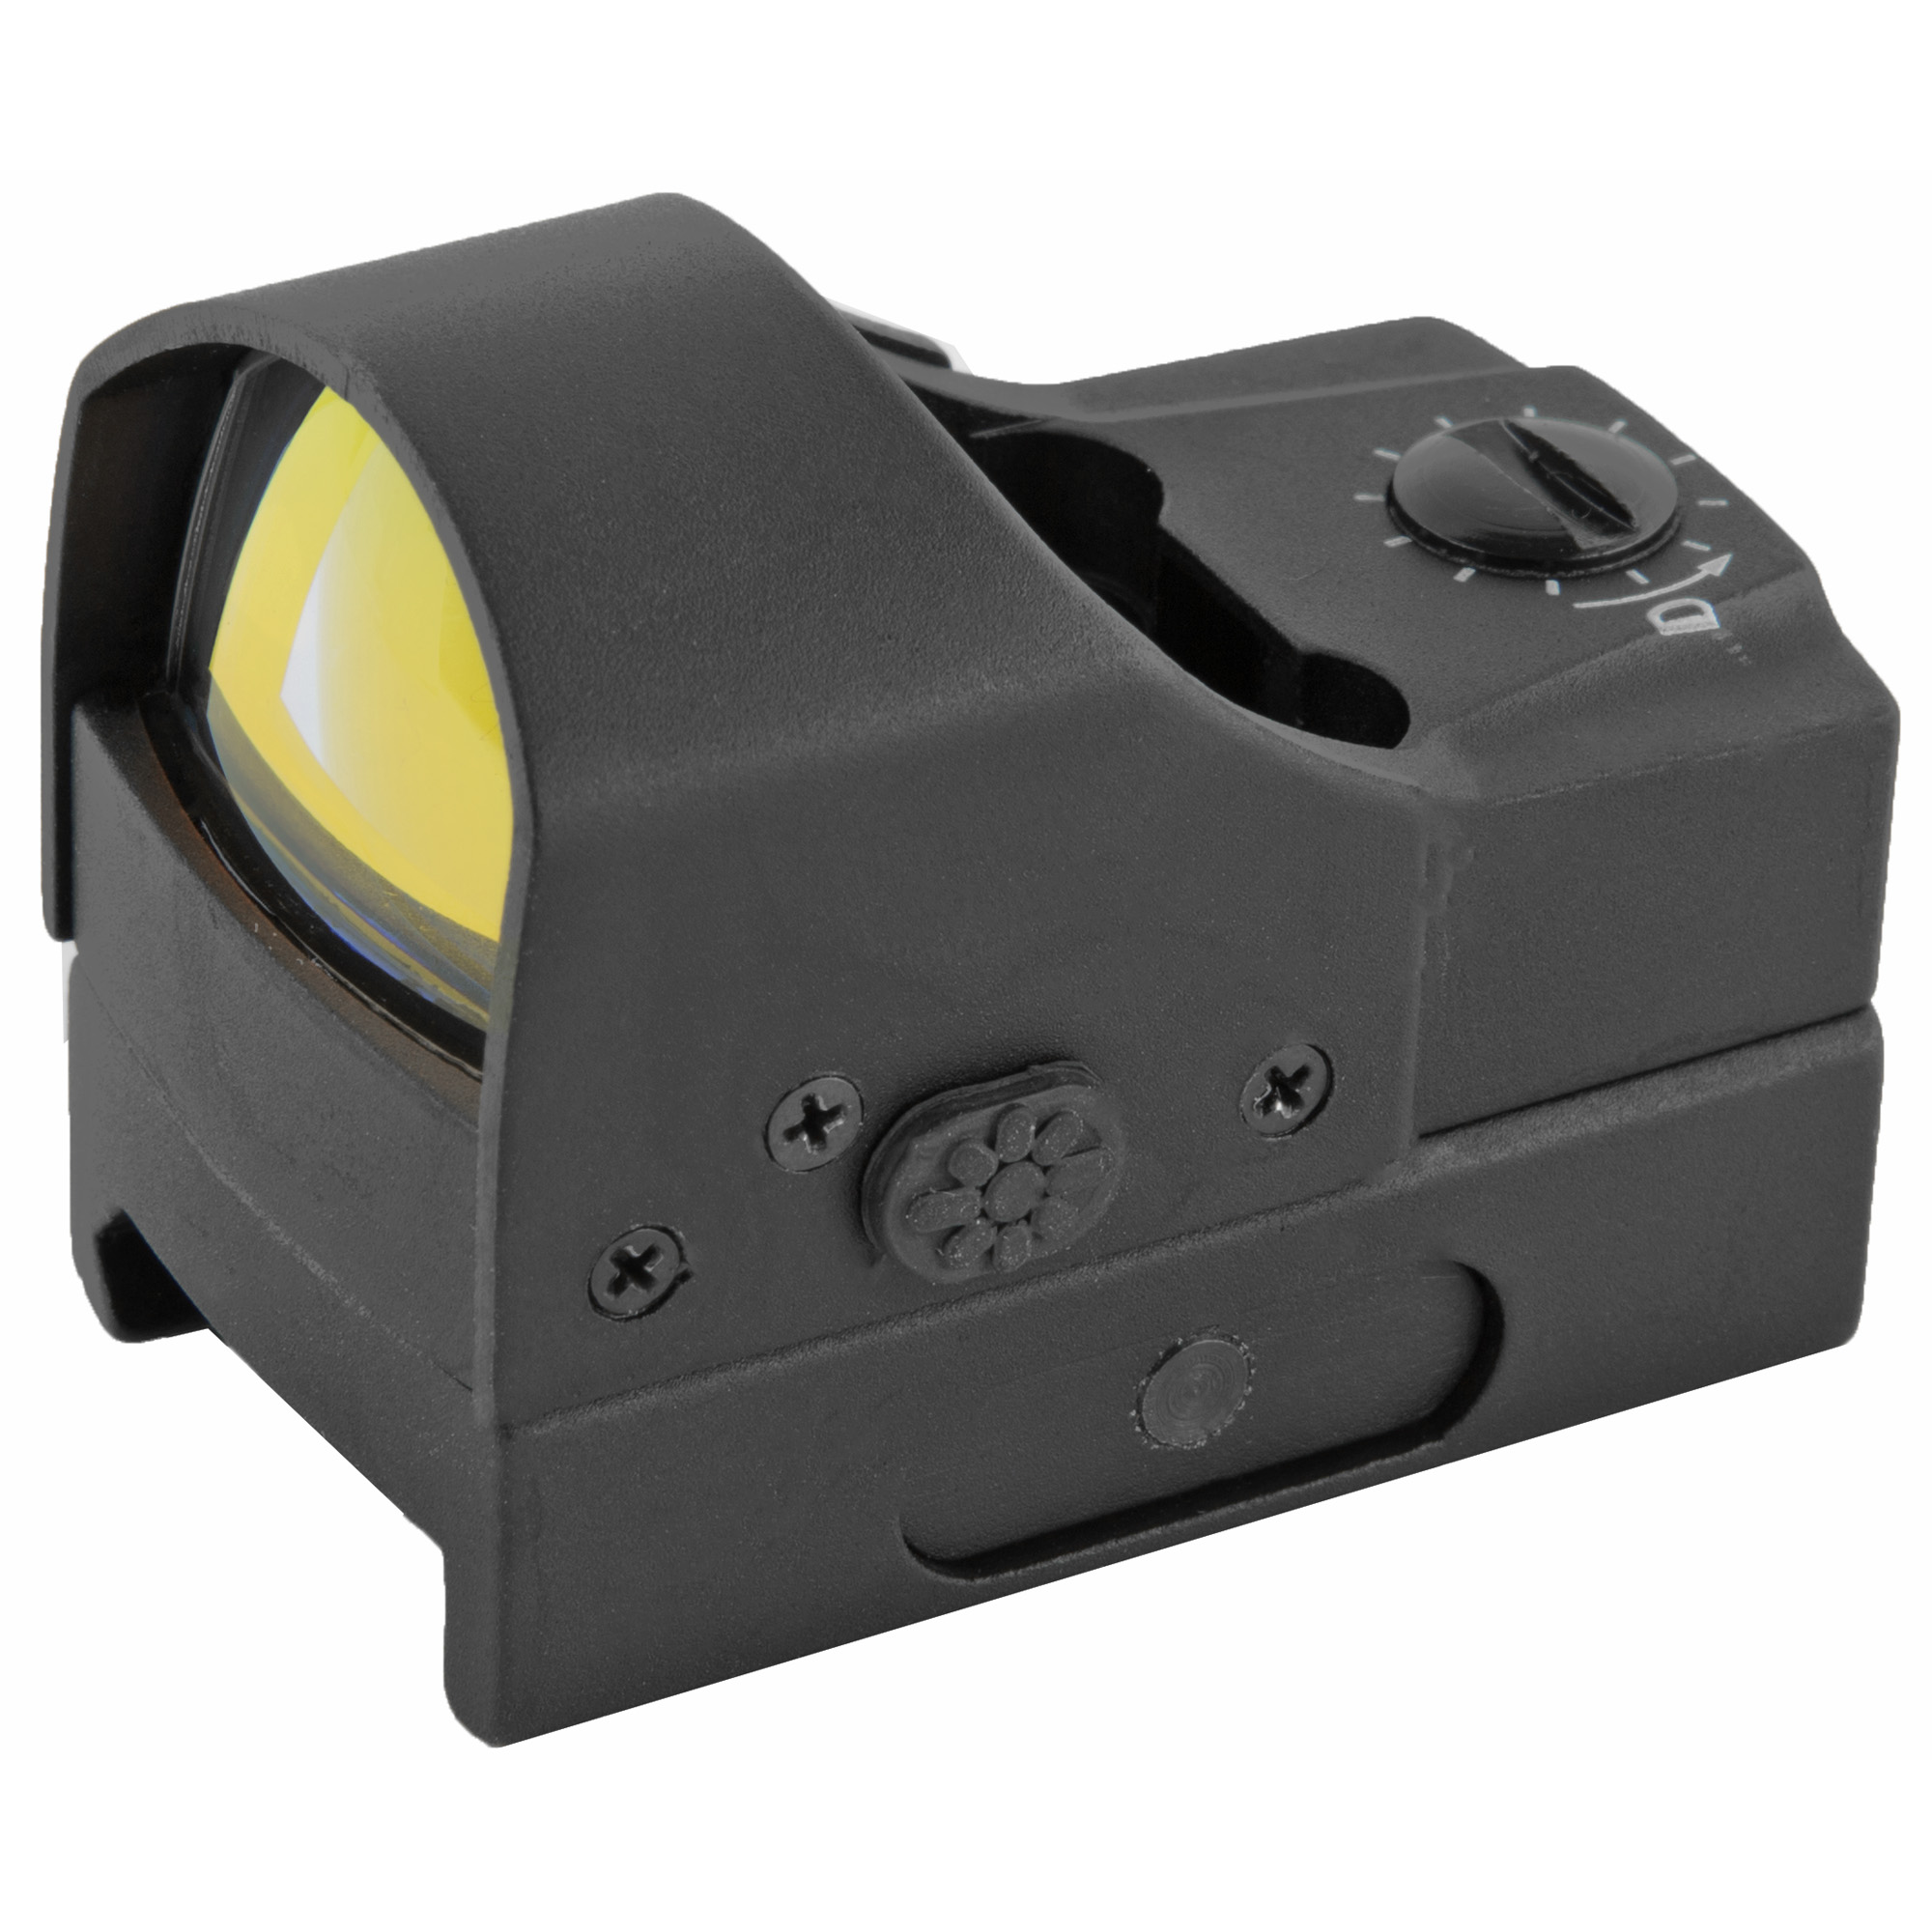 "The SightPro Fission 2.0 is a micro-compact electronic dot sight. If you're looking to minimize weight"" then this 1.76 oz. device is exactly what's needed. Perfect for use on handguns & shotguns"" but also a terrific choice to mount on the side of a scope for CQ situations. The 4 MOA dot can be illuminated with 5 intensity settings for all lighting conditions. The strategically placed push button control switch separates the Fission from other models in the market by keeping your battery life running at optimum performance while staying clear of the shooters line of sight. The full body cover keeps your scope clean and in tip-top condition when not in use."